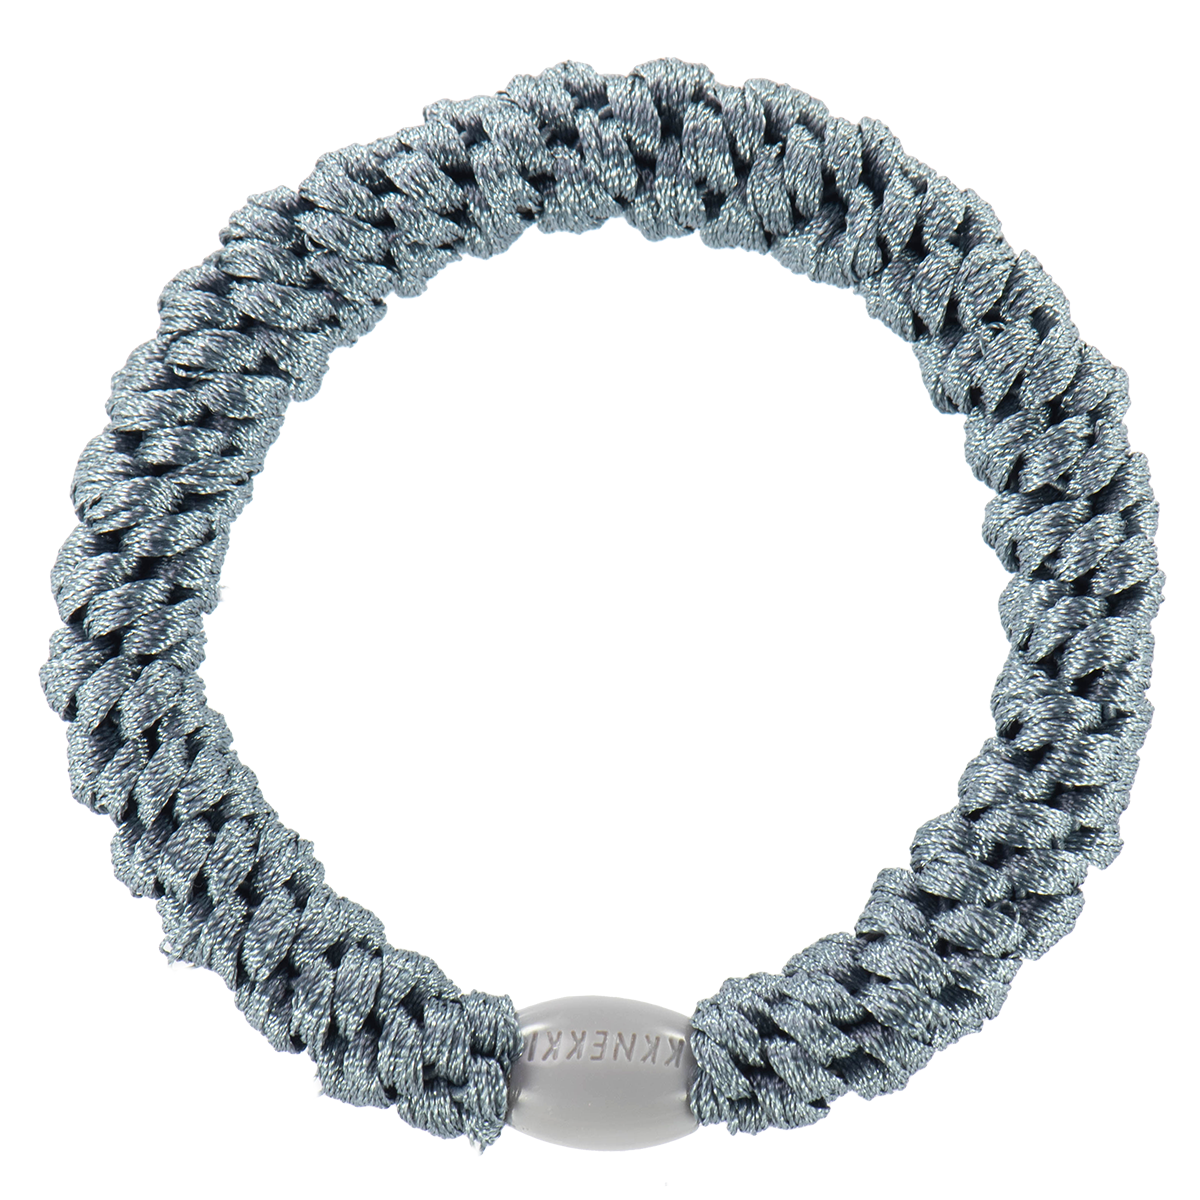 Haargummi / Armband - Dusty grey-blue 1642 - KKNEKKI